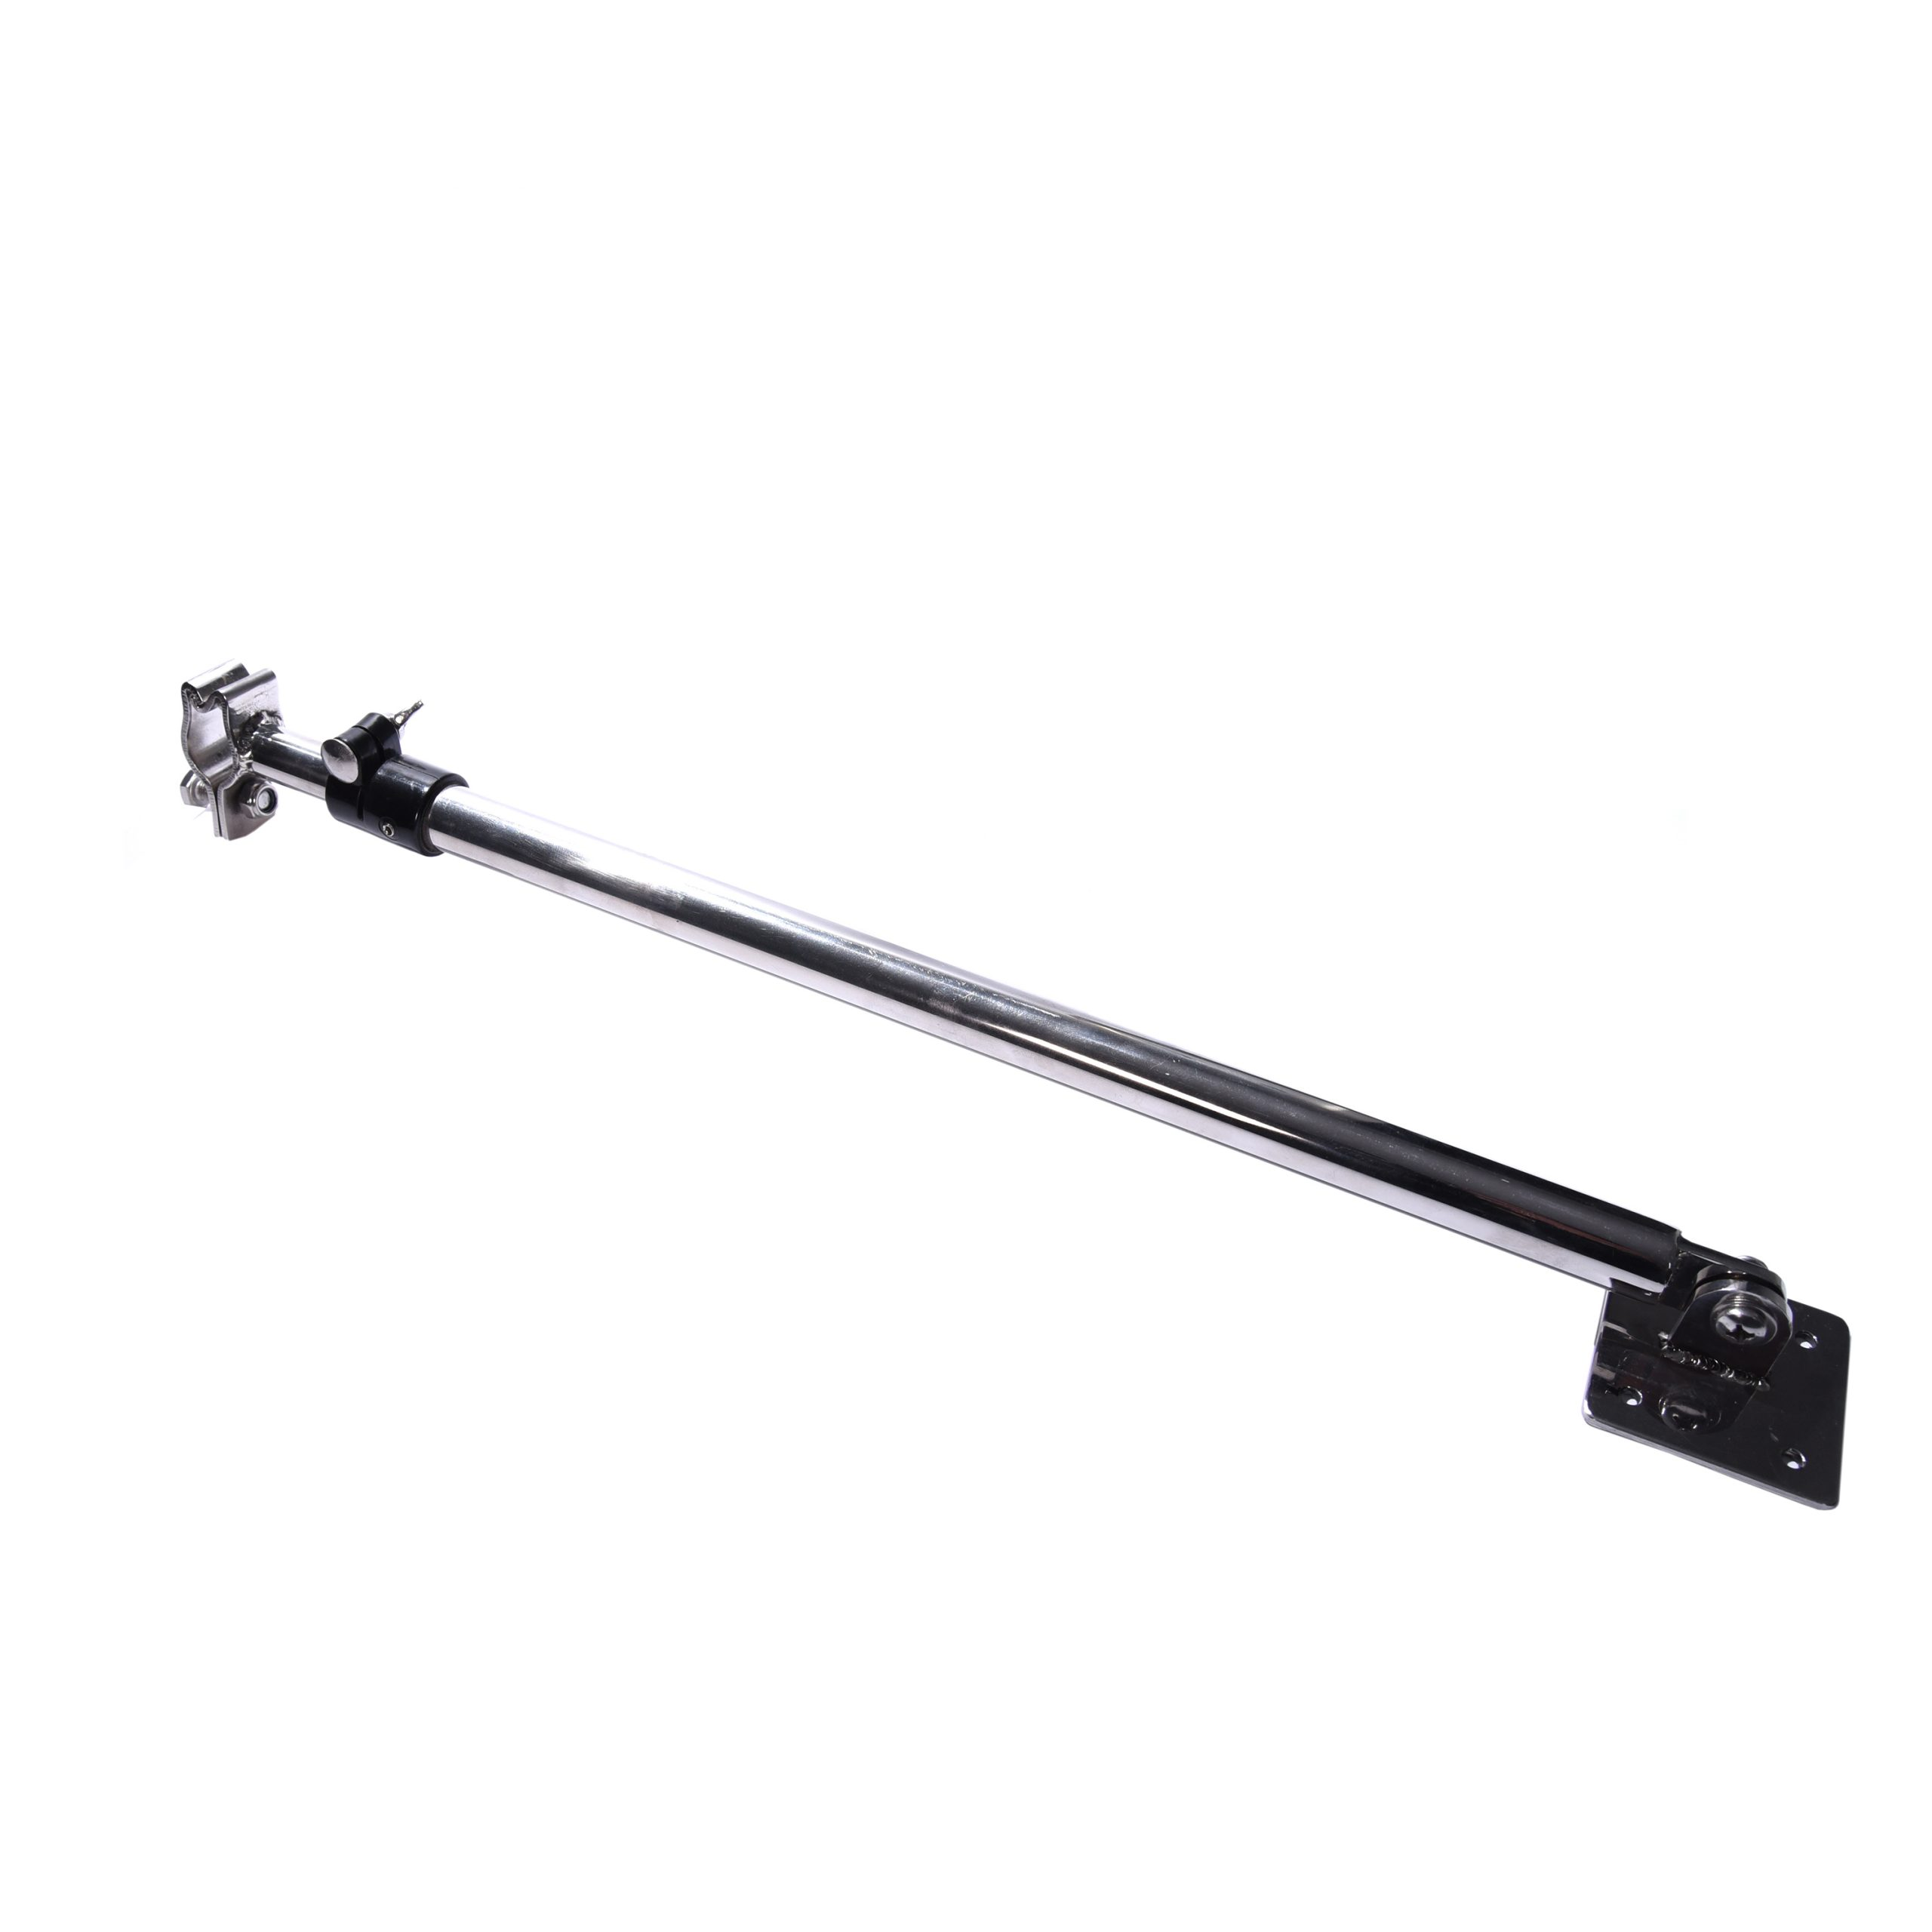 Stainless Telescopic Arm Support for Cookout BBQ for boat